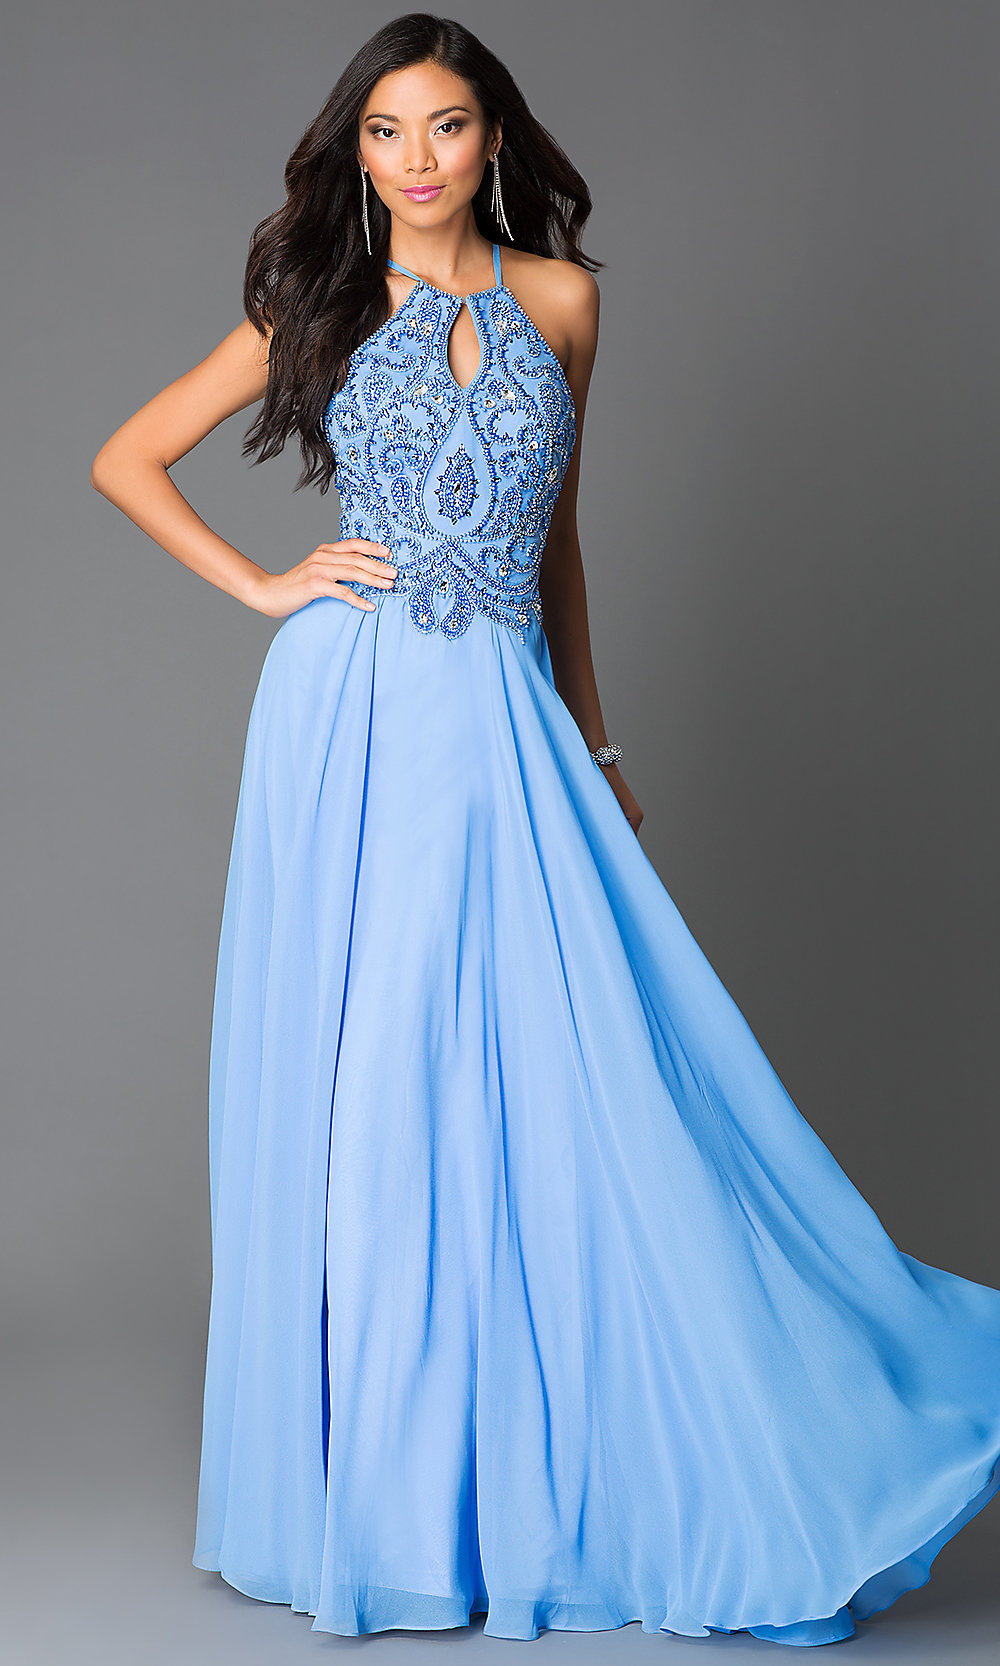 Formal blue dress catalog photo